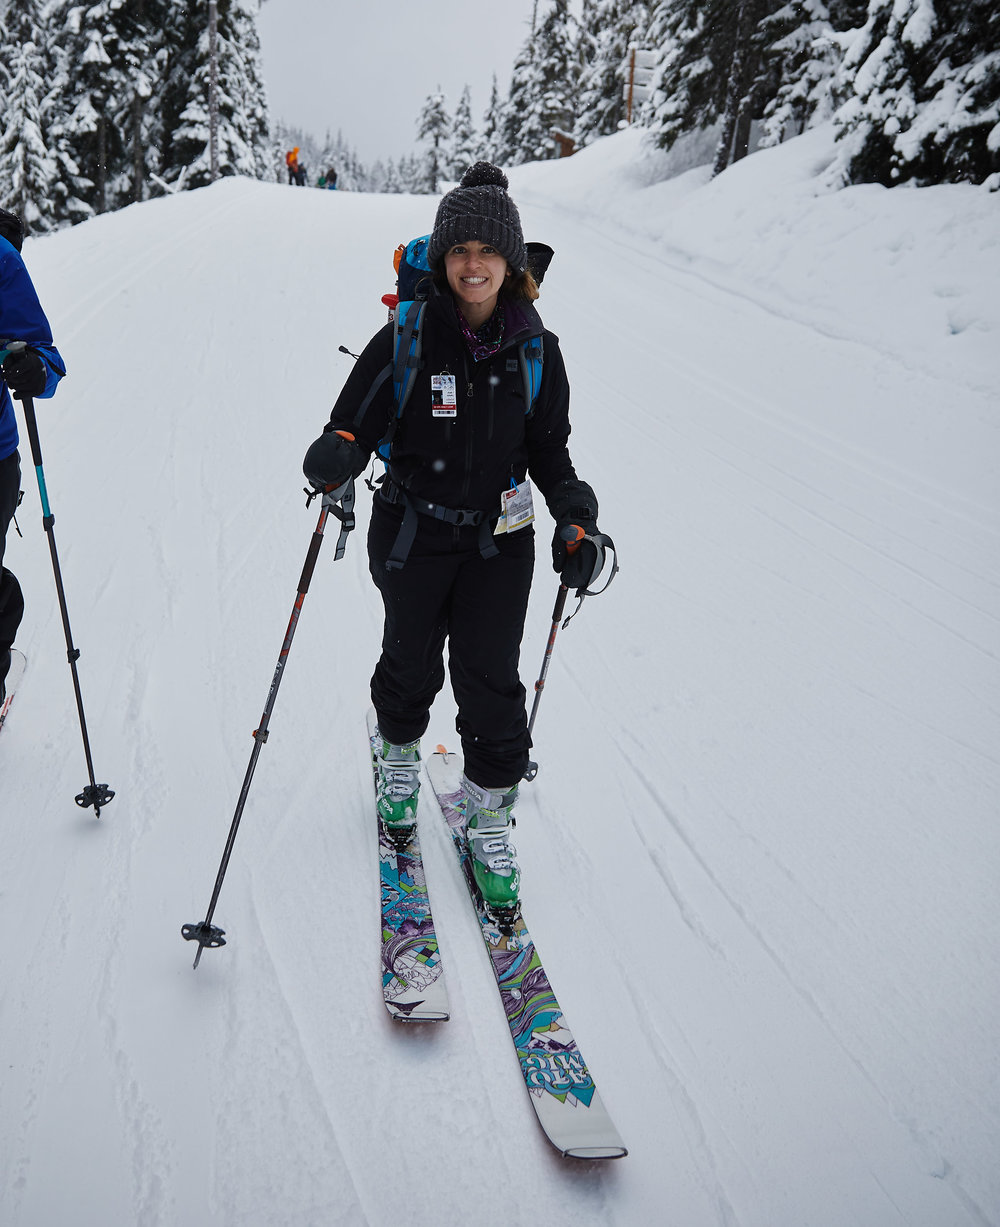 You first have to ski down a groomed cross country trail to reach the trail head.